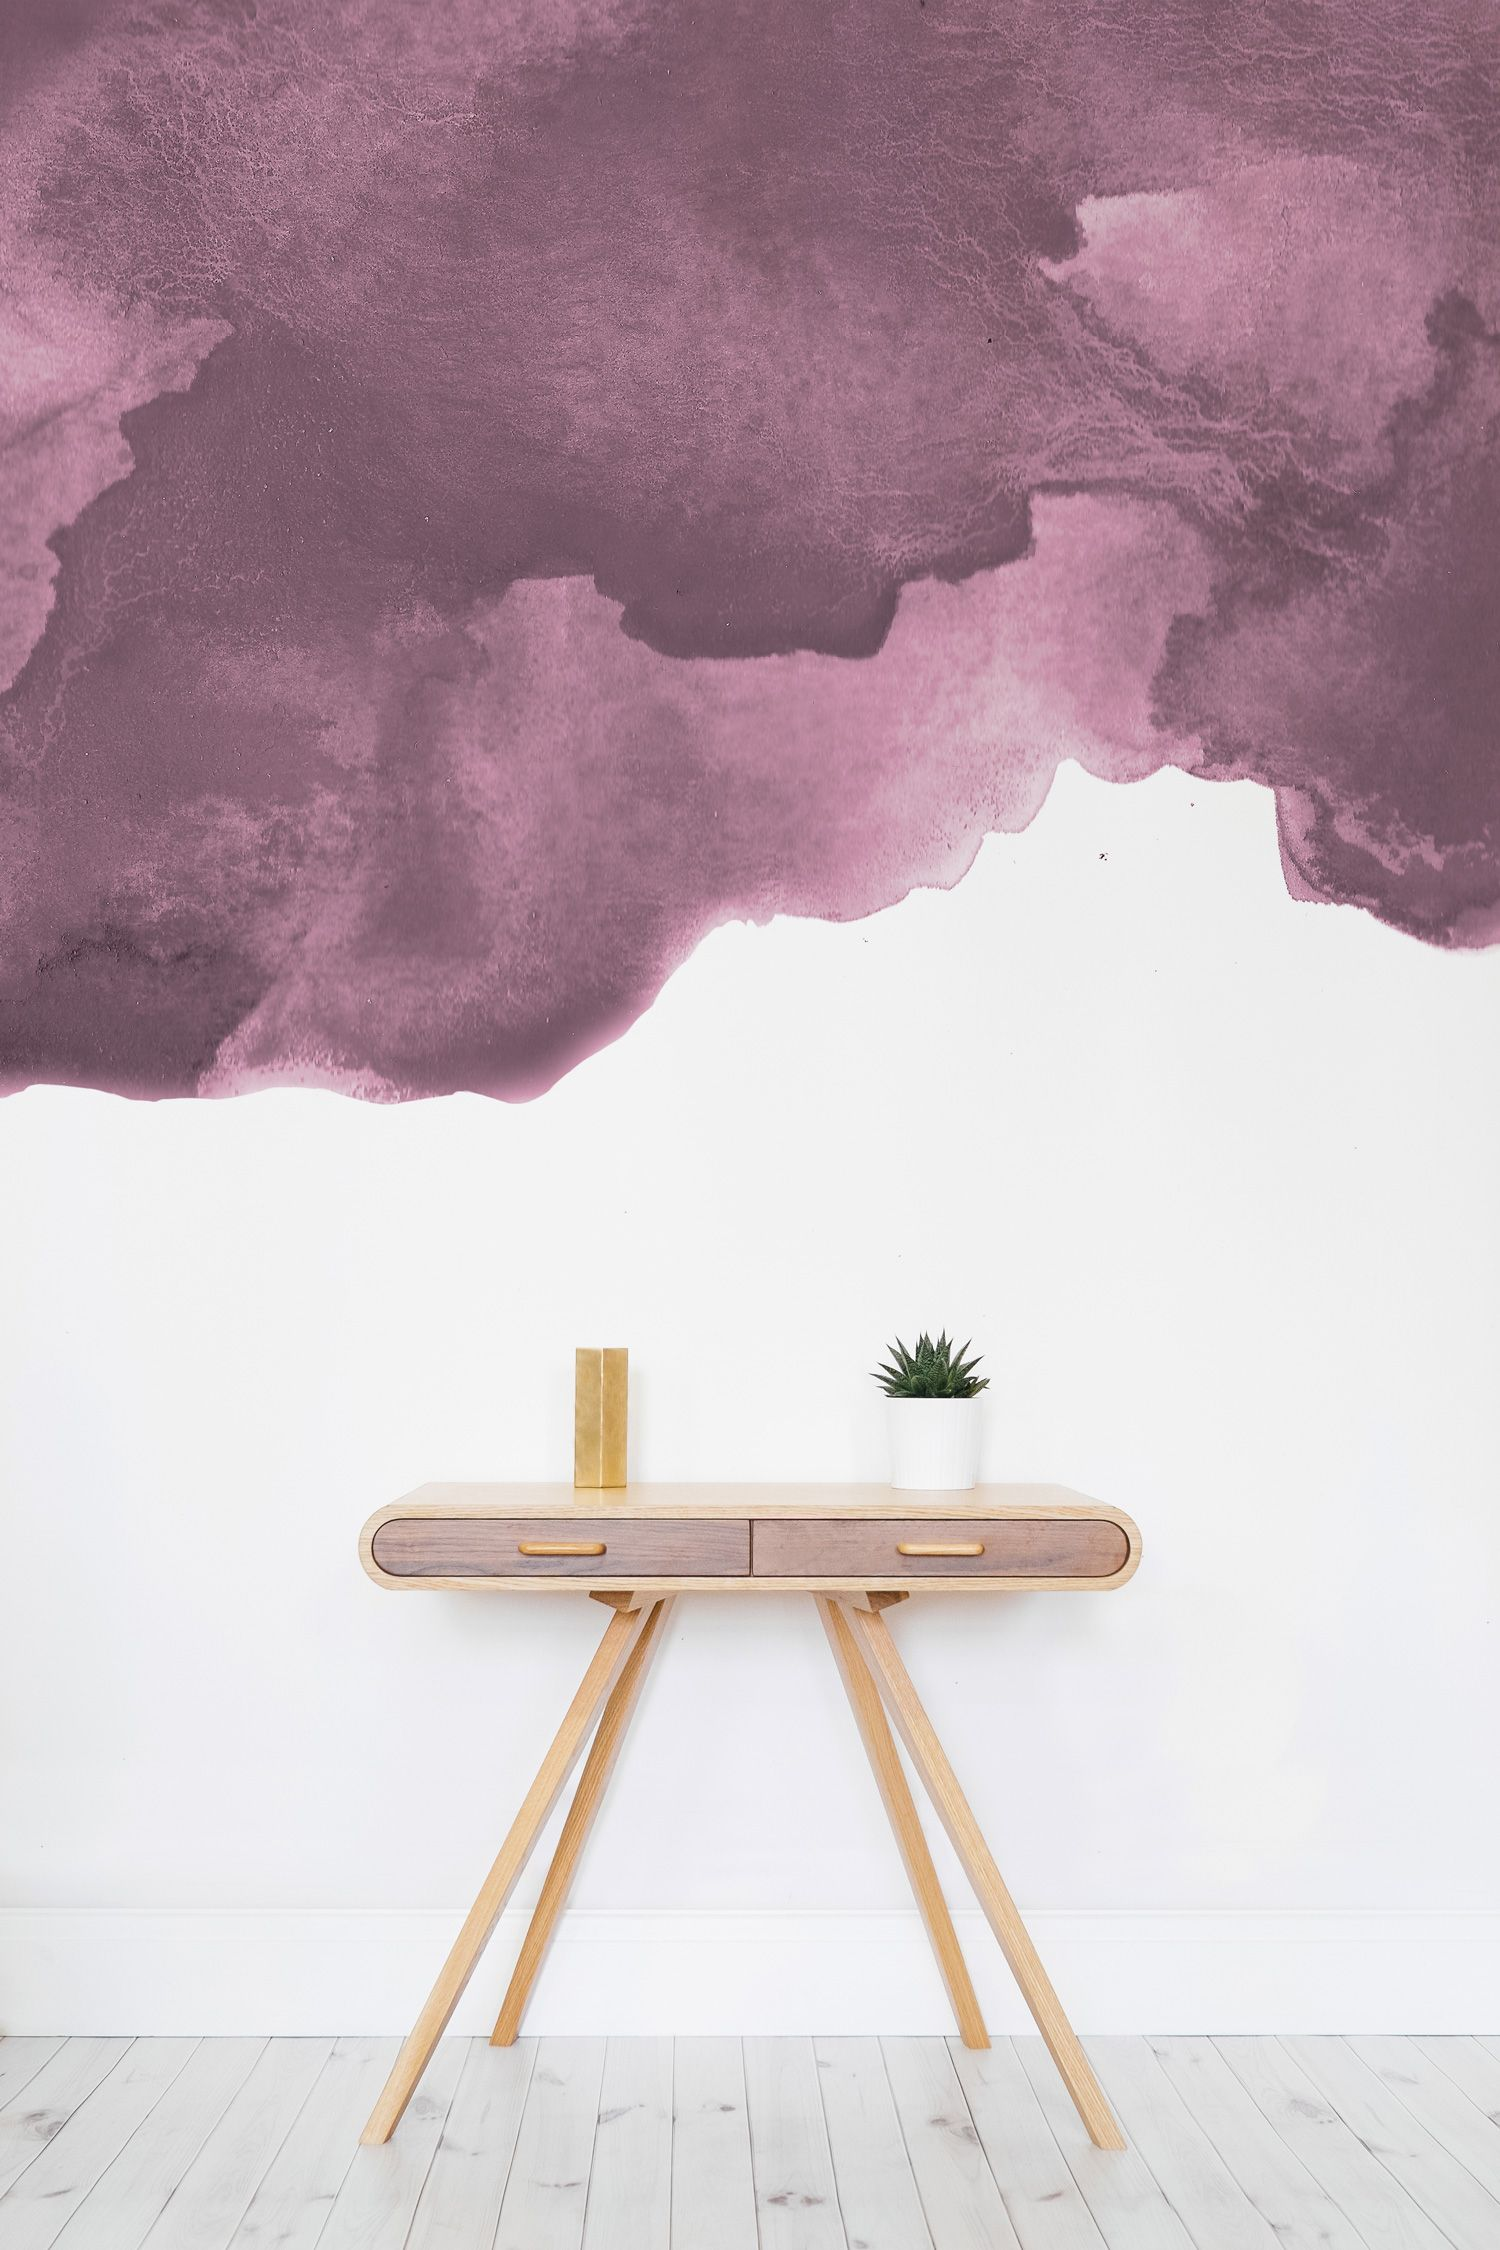 Relish dusty pink vibes with this watercolor